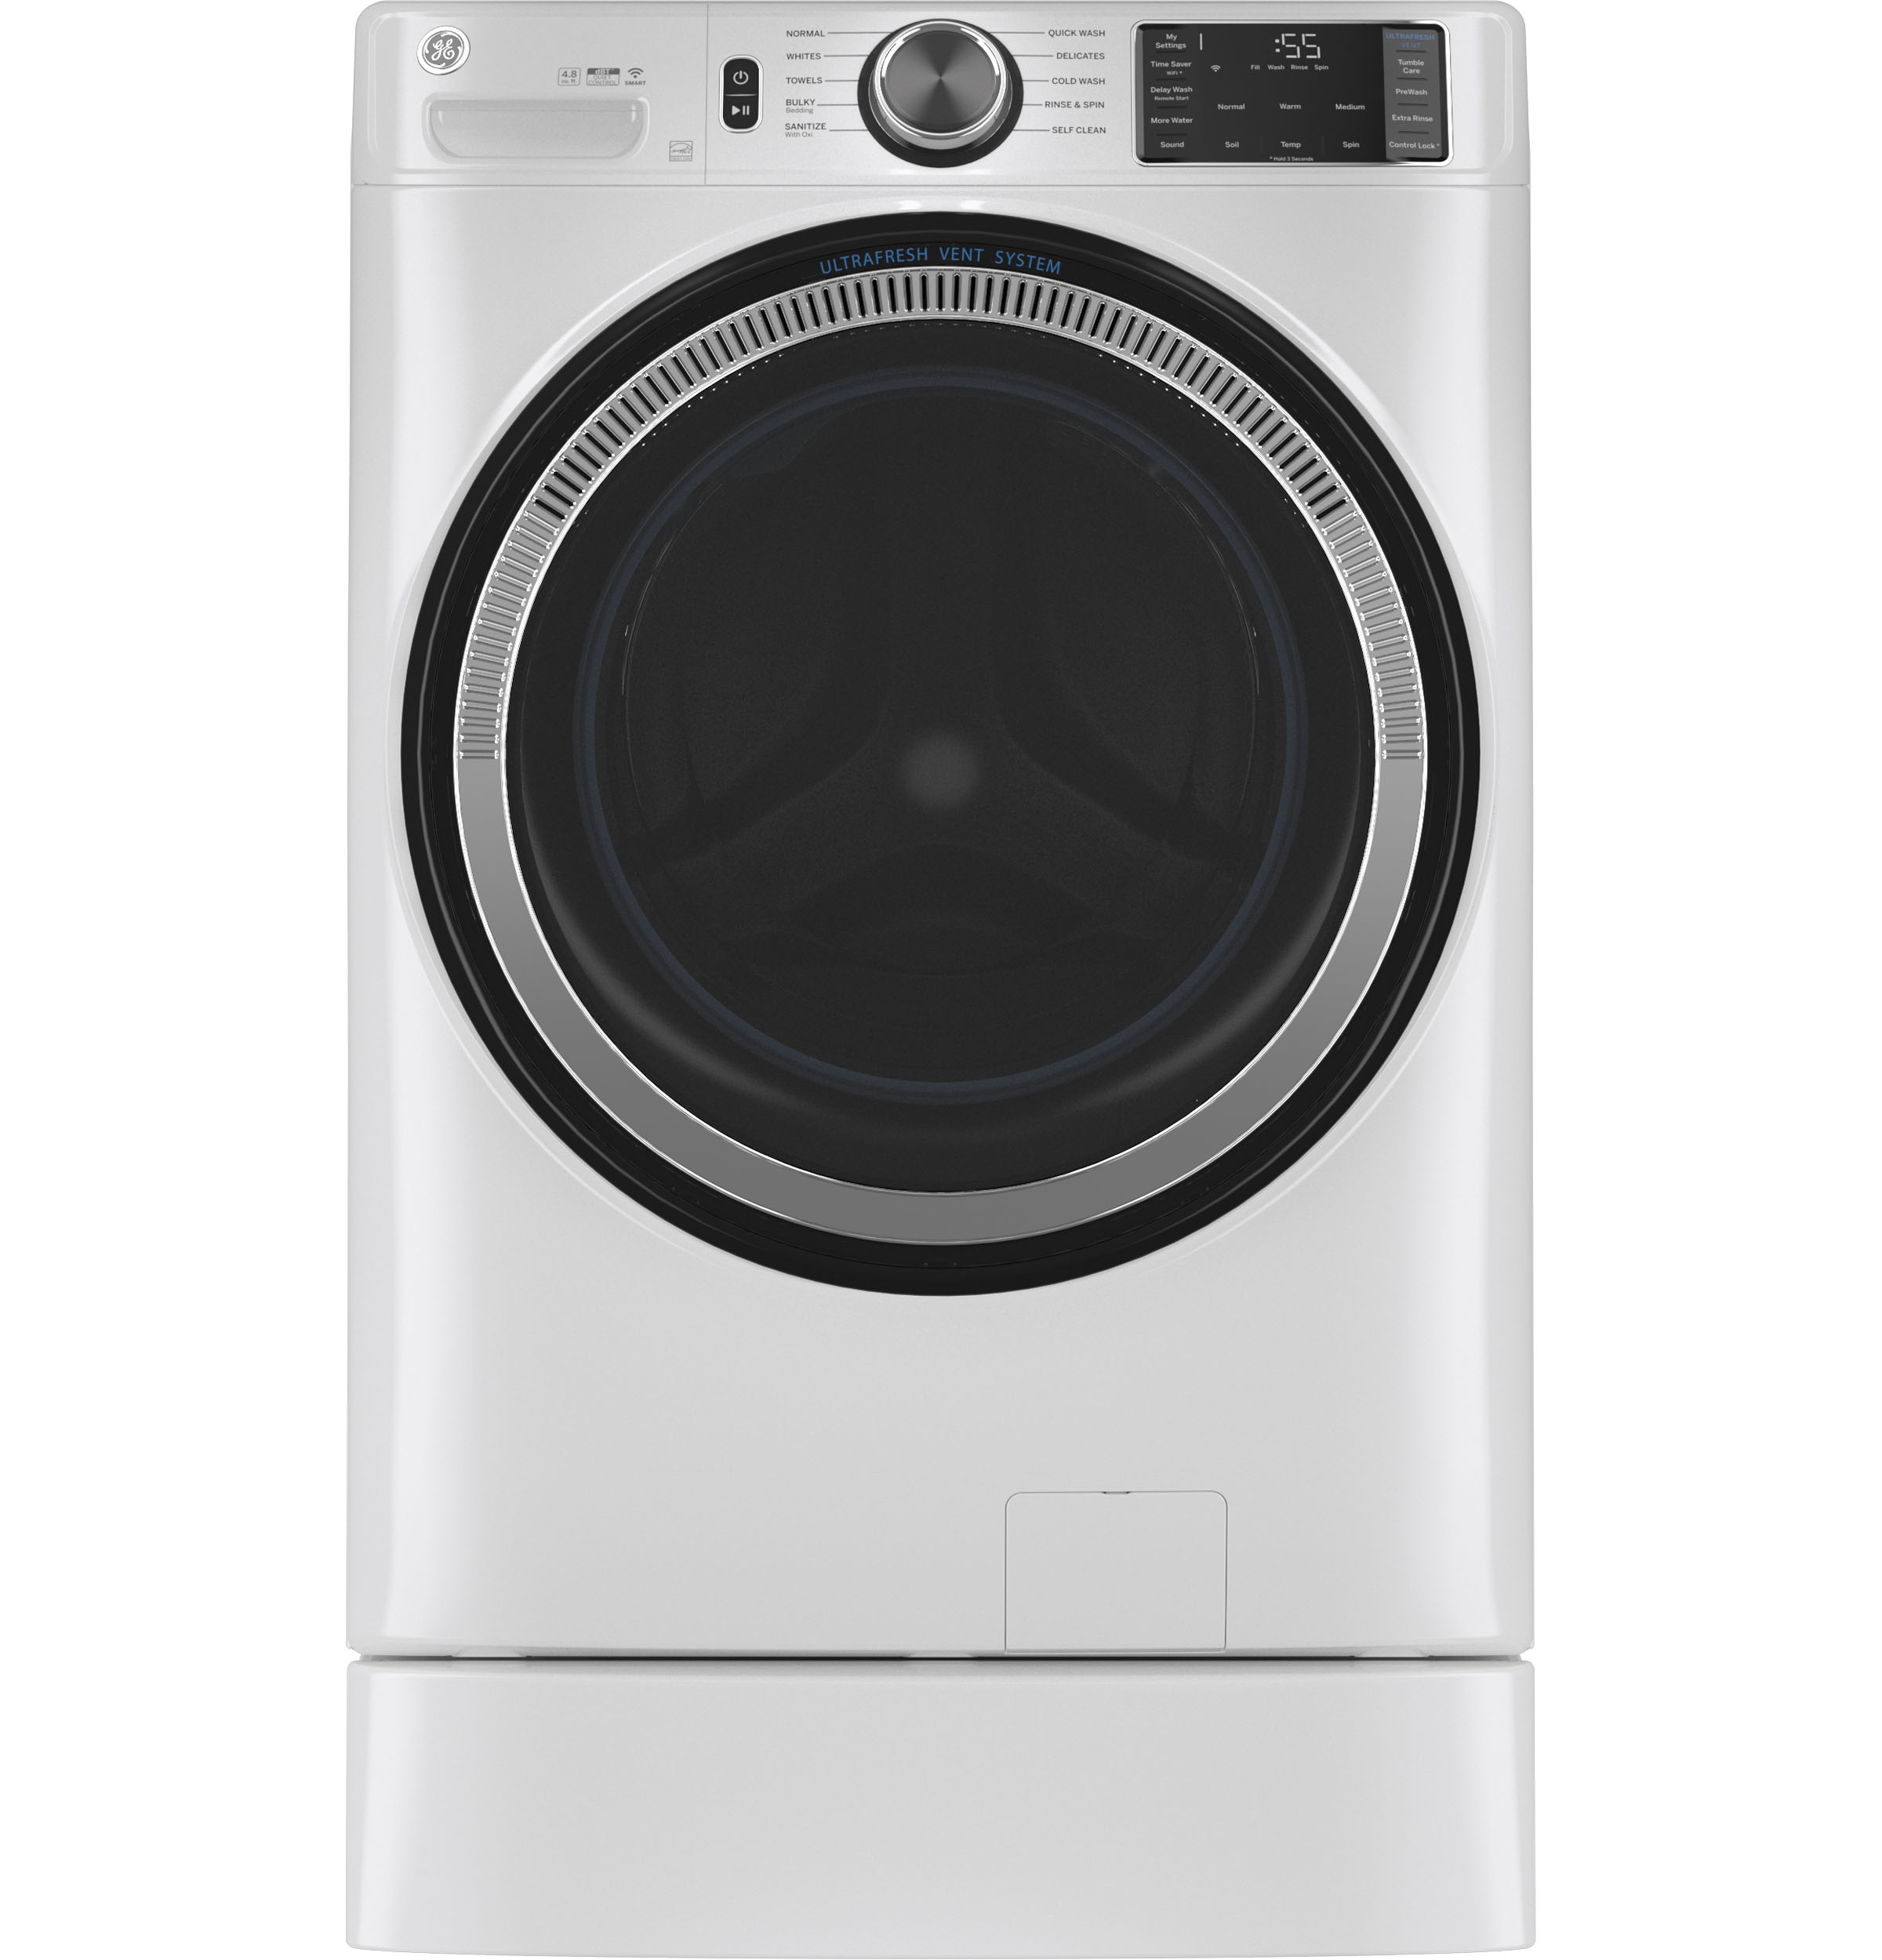 Model: GFW550SSNWW   GE GE® 4.8 cu. ft. Capacity Smart Front Load ENERGY STAR® Washer with UltraFresh Vent System with OdorBlock™ and Sanitize w/Oxi